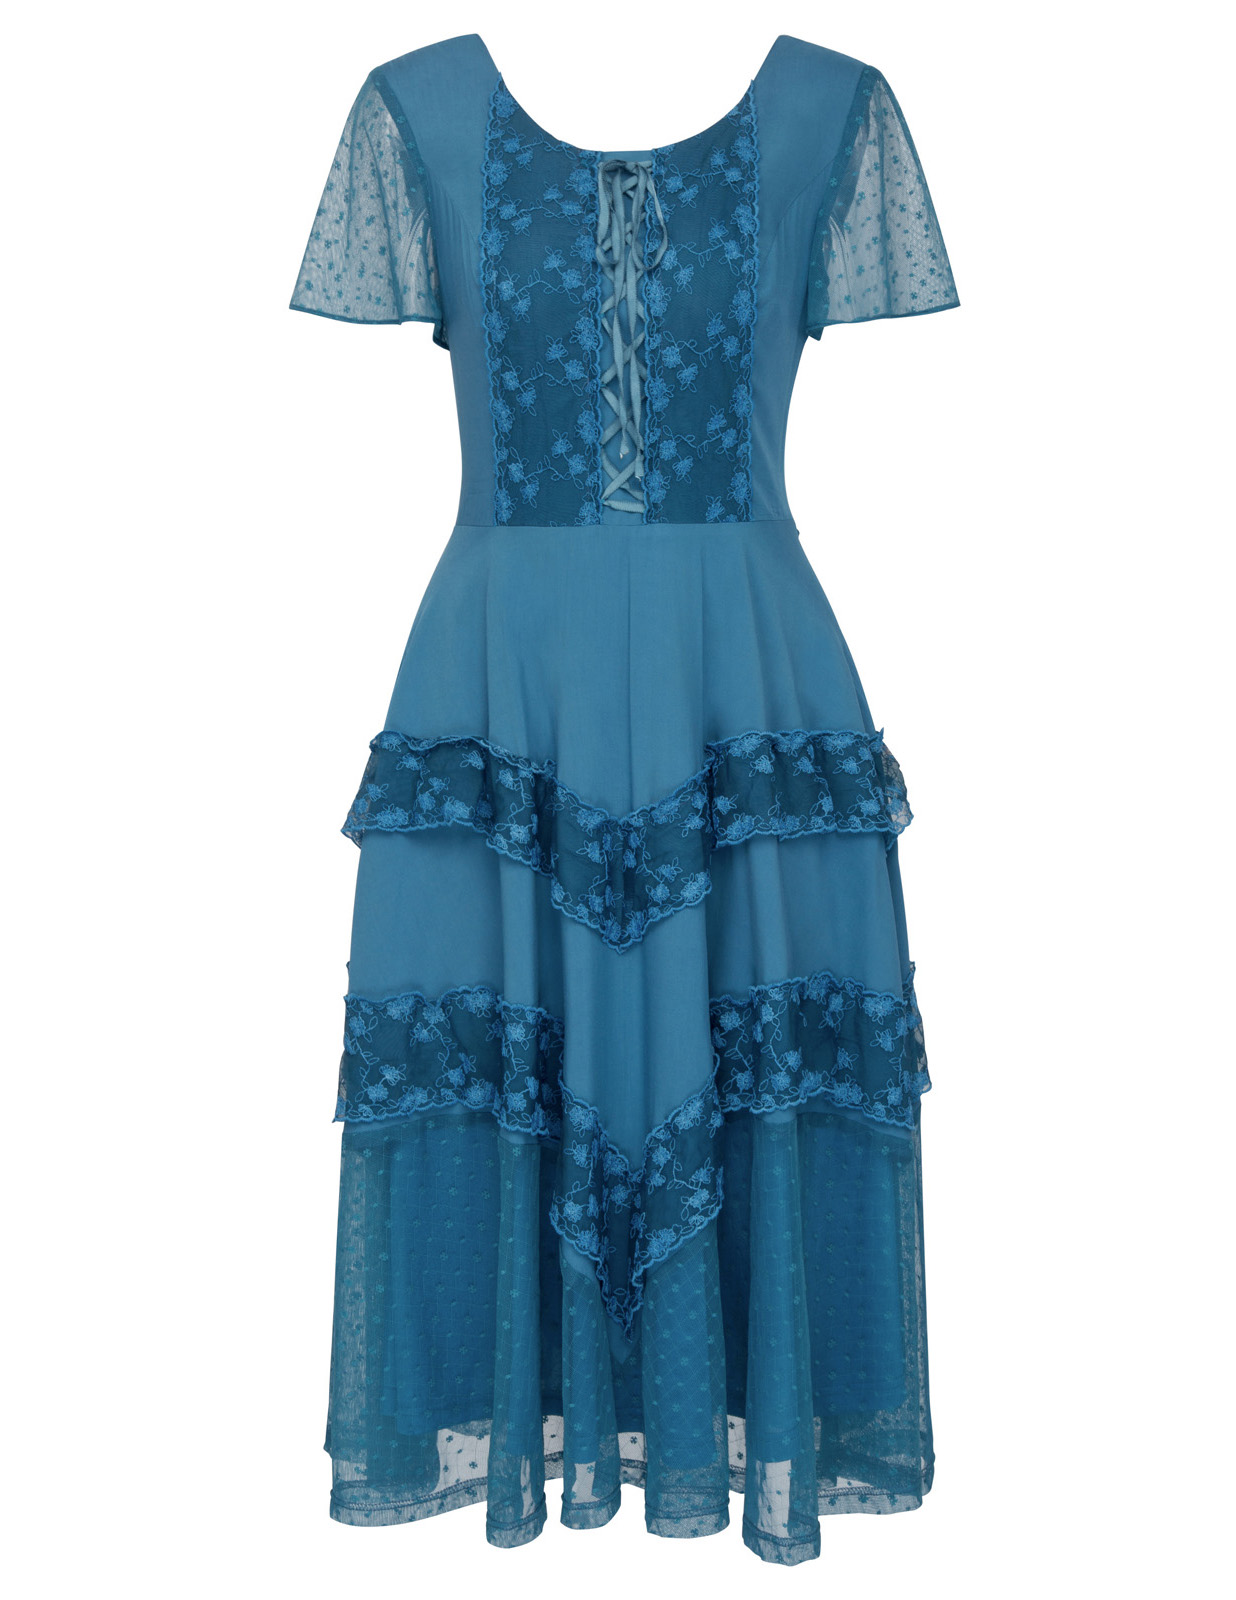 grace karin Victorian Dresses Women Summer Black Cerulean Lace ...